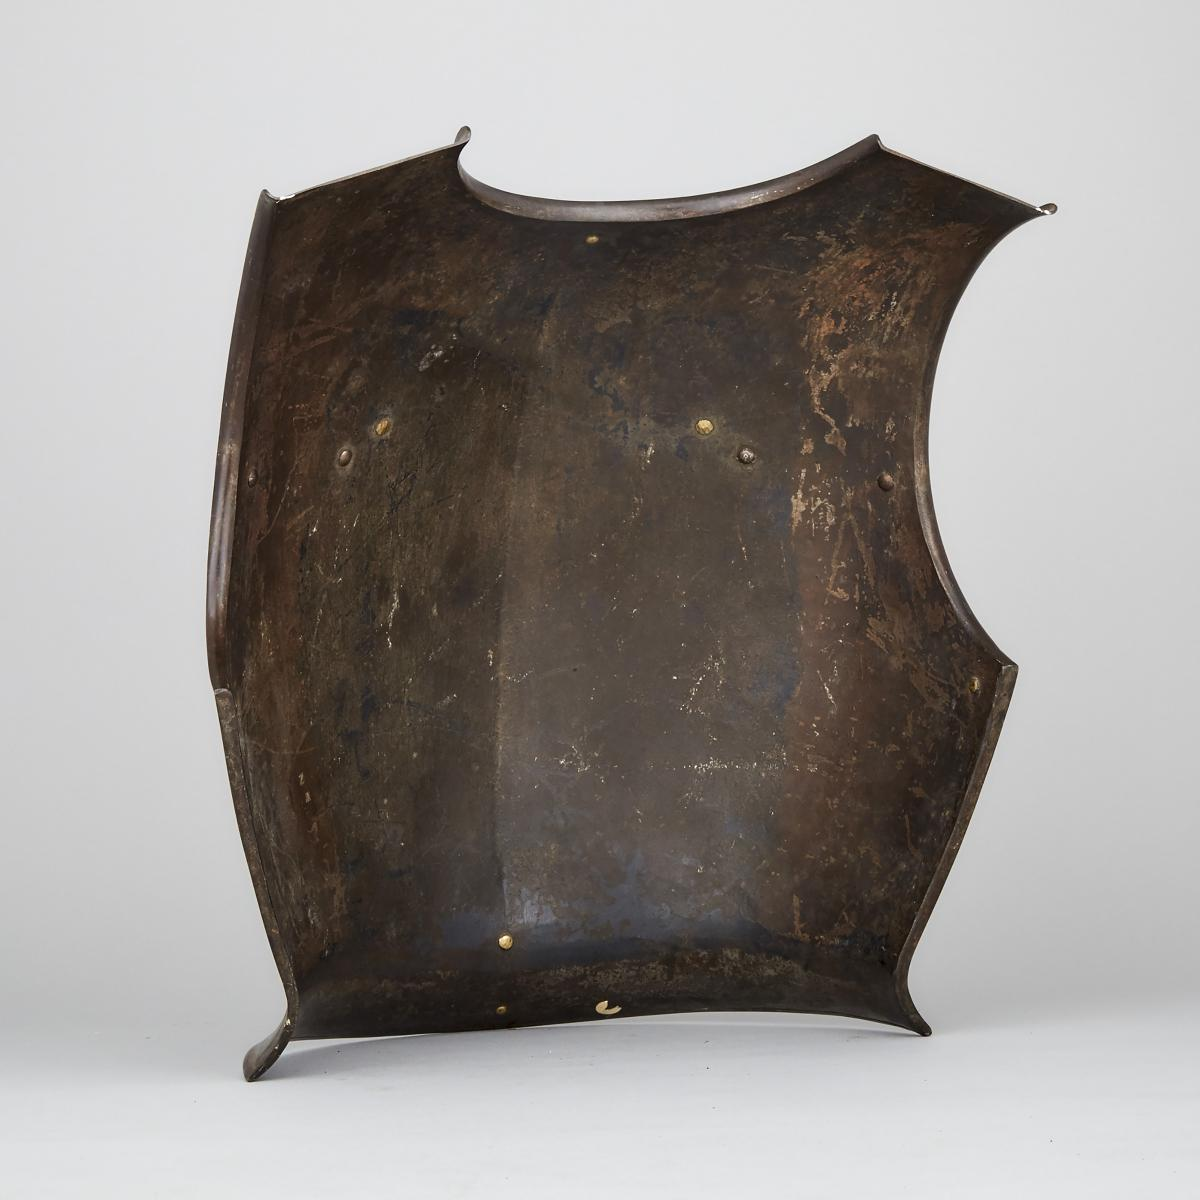 French Cuirassier's Breastplate, early 19th century, height 16 in — 40.6 cm - Image 2 of 2